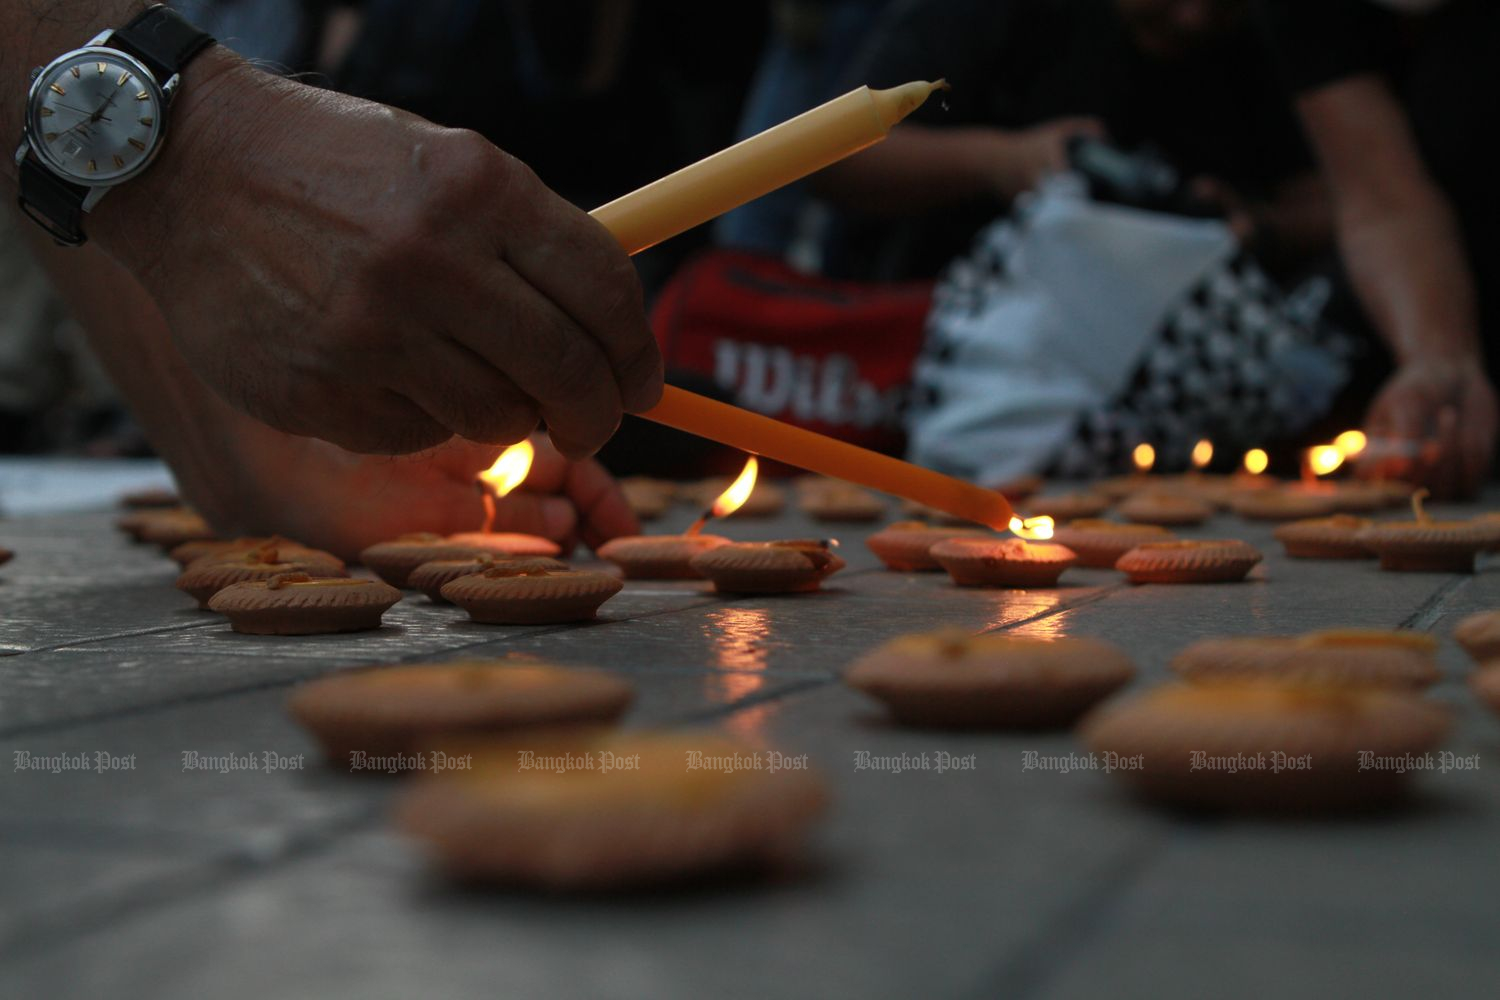 People light candles for the victims of the Feb 8-9 shooting in which 29 people were killed in Nakhon Ratchasima on Feb 13 this year. (Photo by Nutthawat Wicheanbut)